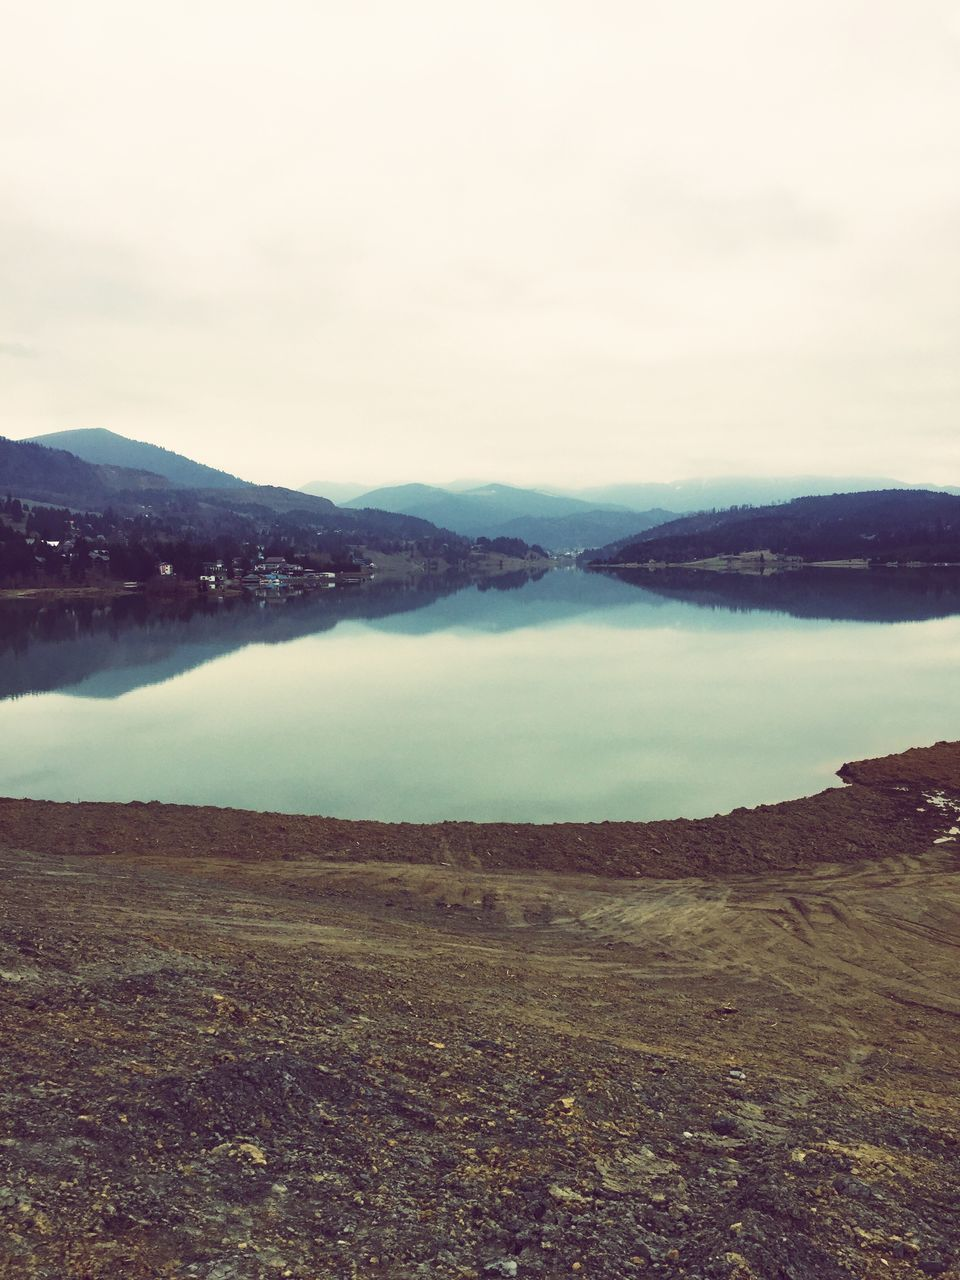 nature, beauty in nature, tranquil scene, tranquility, scenics, outdoors, mountain, no people, landscape, sky, day, water, lake